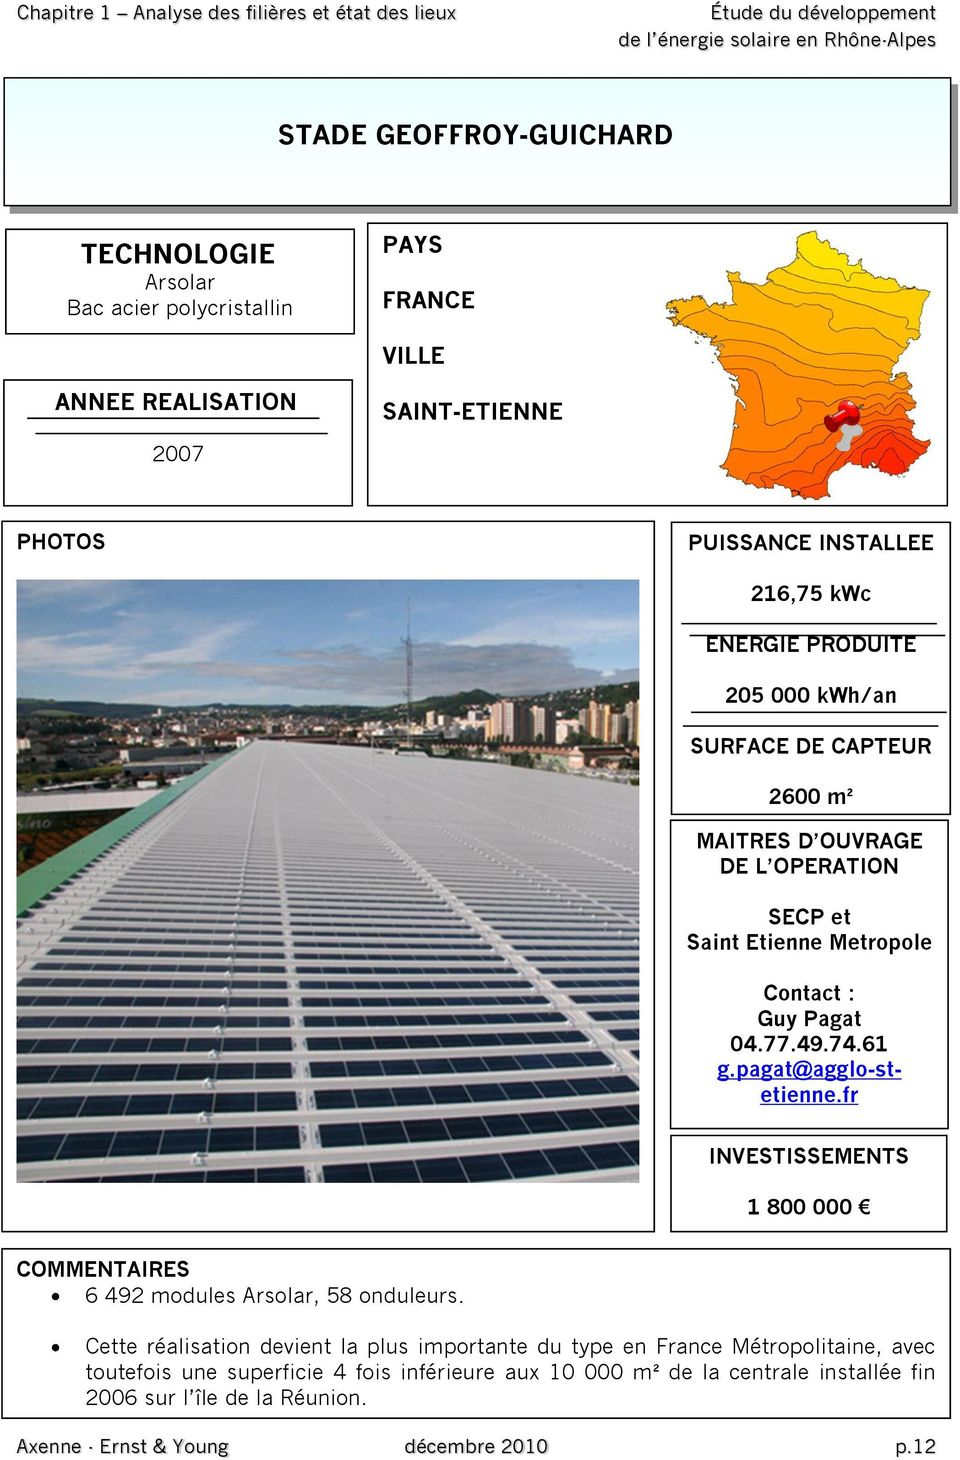 49.74.61 g.pagat@agglo-stetienne.fr INVESTISSEMENTS 1 800 000 COMMENTAIRES 6 492 modules Arsolar, 58 onduleurs.